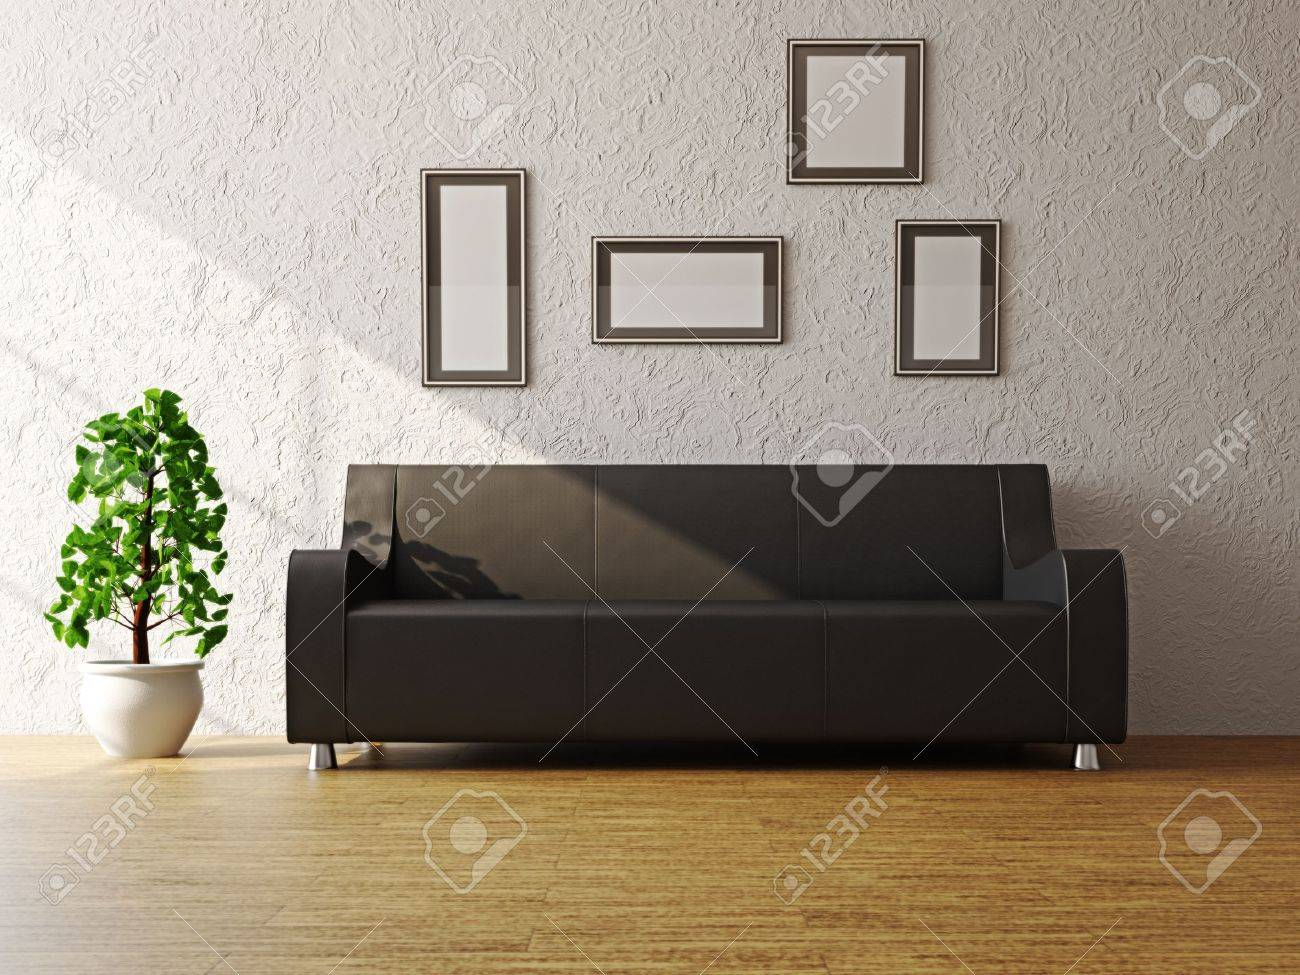 Black leather sofa and a plant near the wall